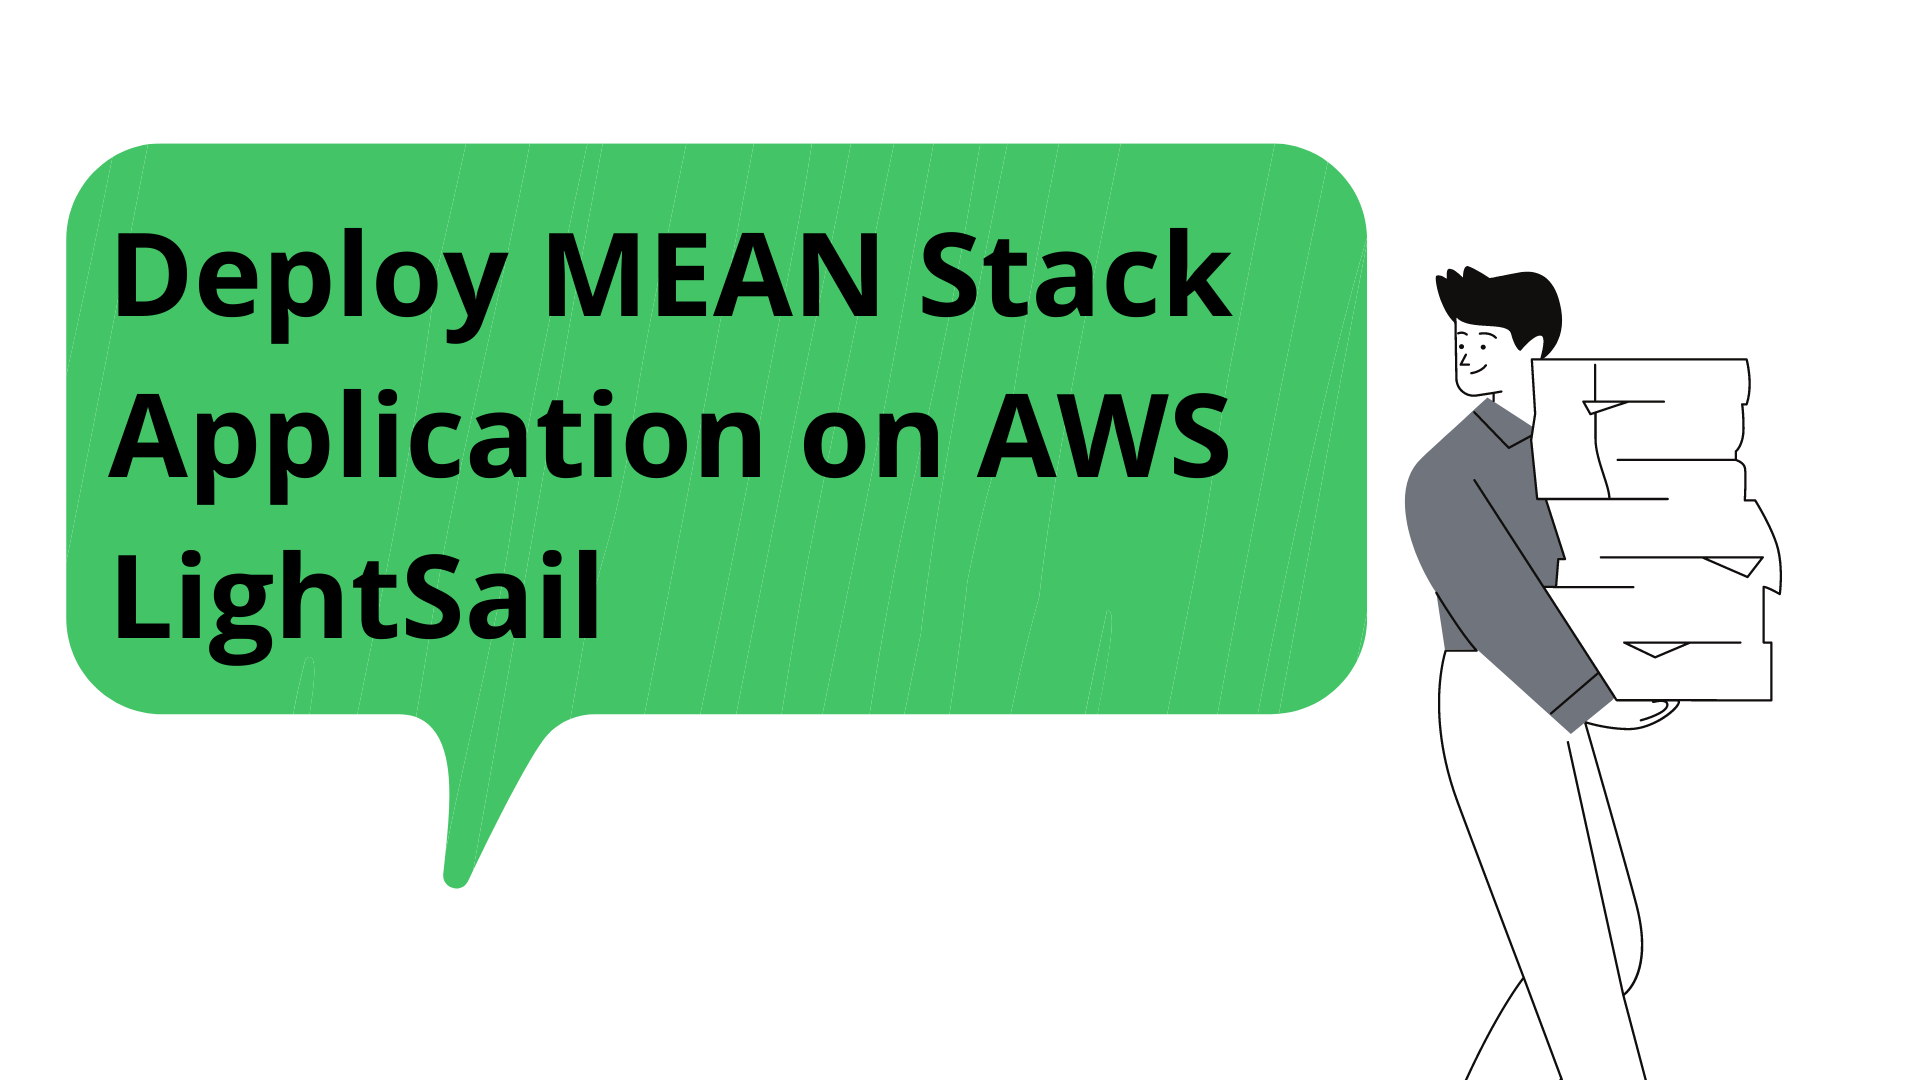 How to Deploy MEAN Stack Application on AWS LightSail